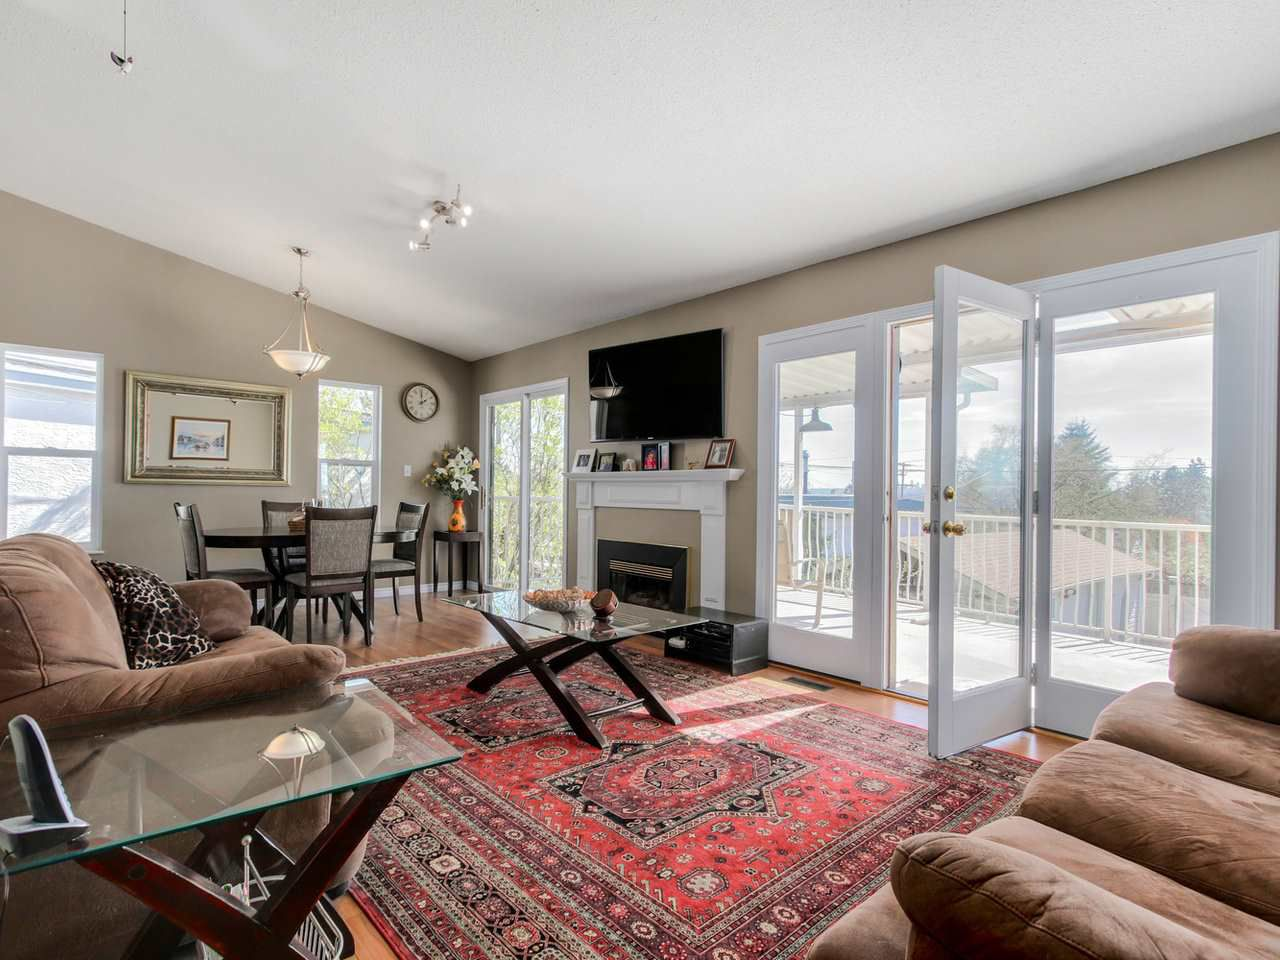 Photo 3: Photos: 449 E 5TH Street in North Vancouver: Lower Lonsdale House for sale : MLS®# R2056647